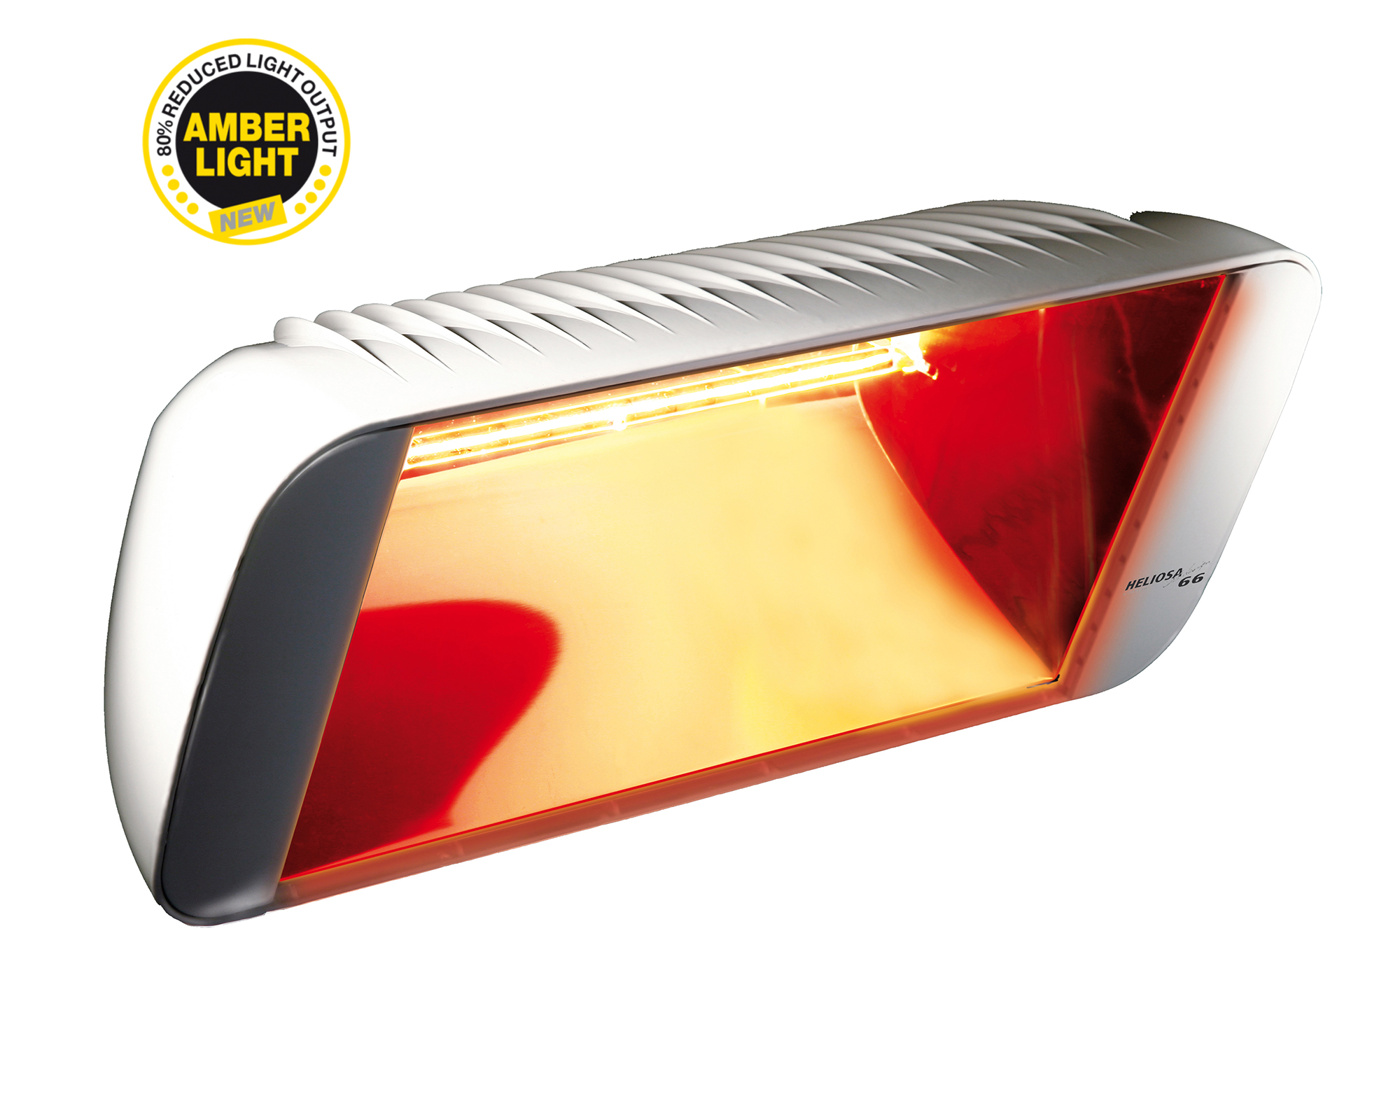 HELIOSA 66  Amber Light